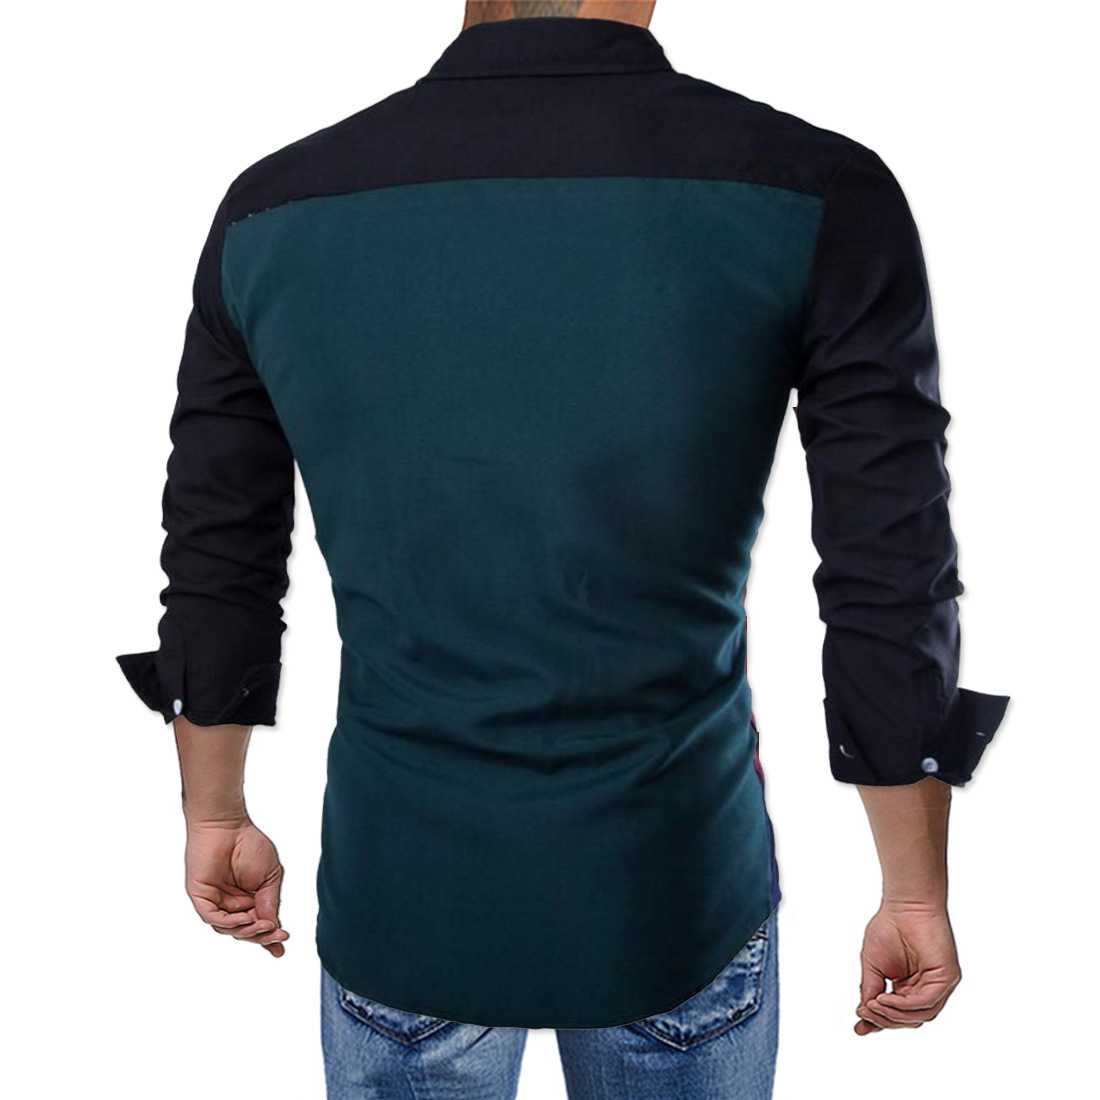 2019 New Style Fashion Color Stripes MEN'S Shirt England Mixed Colors Long-sleeve Blouse J-y097